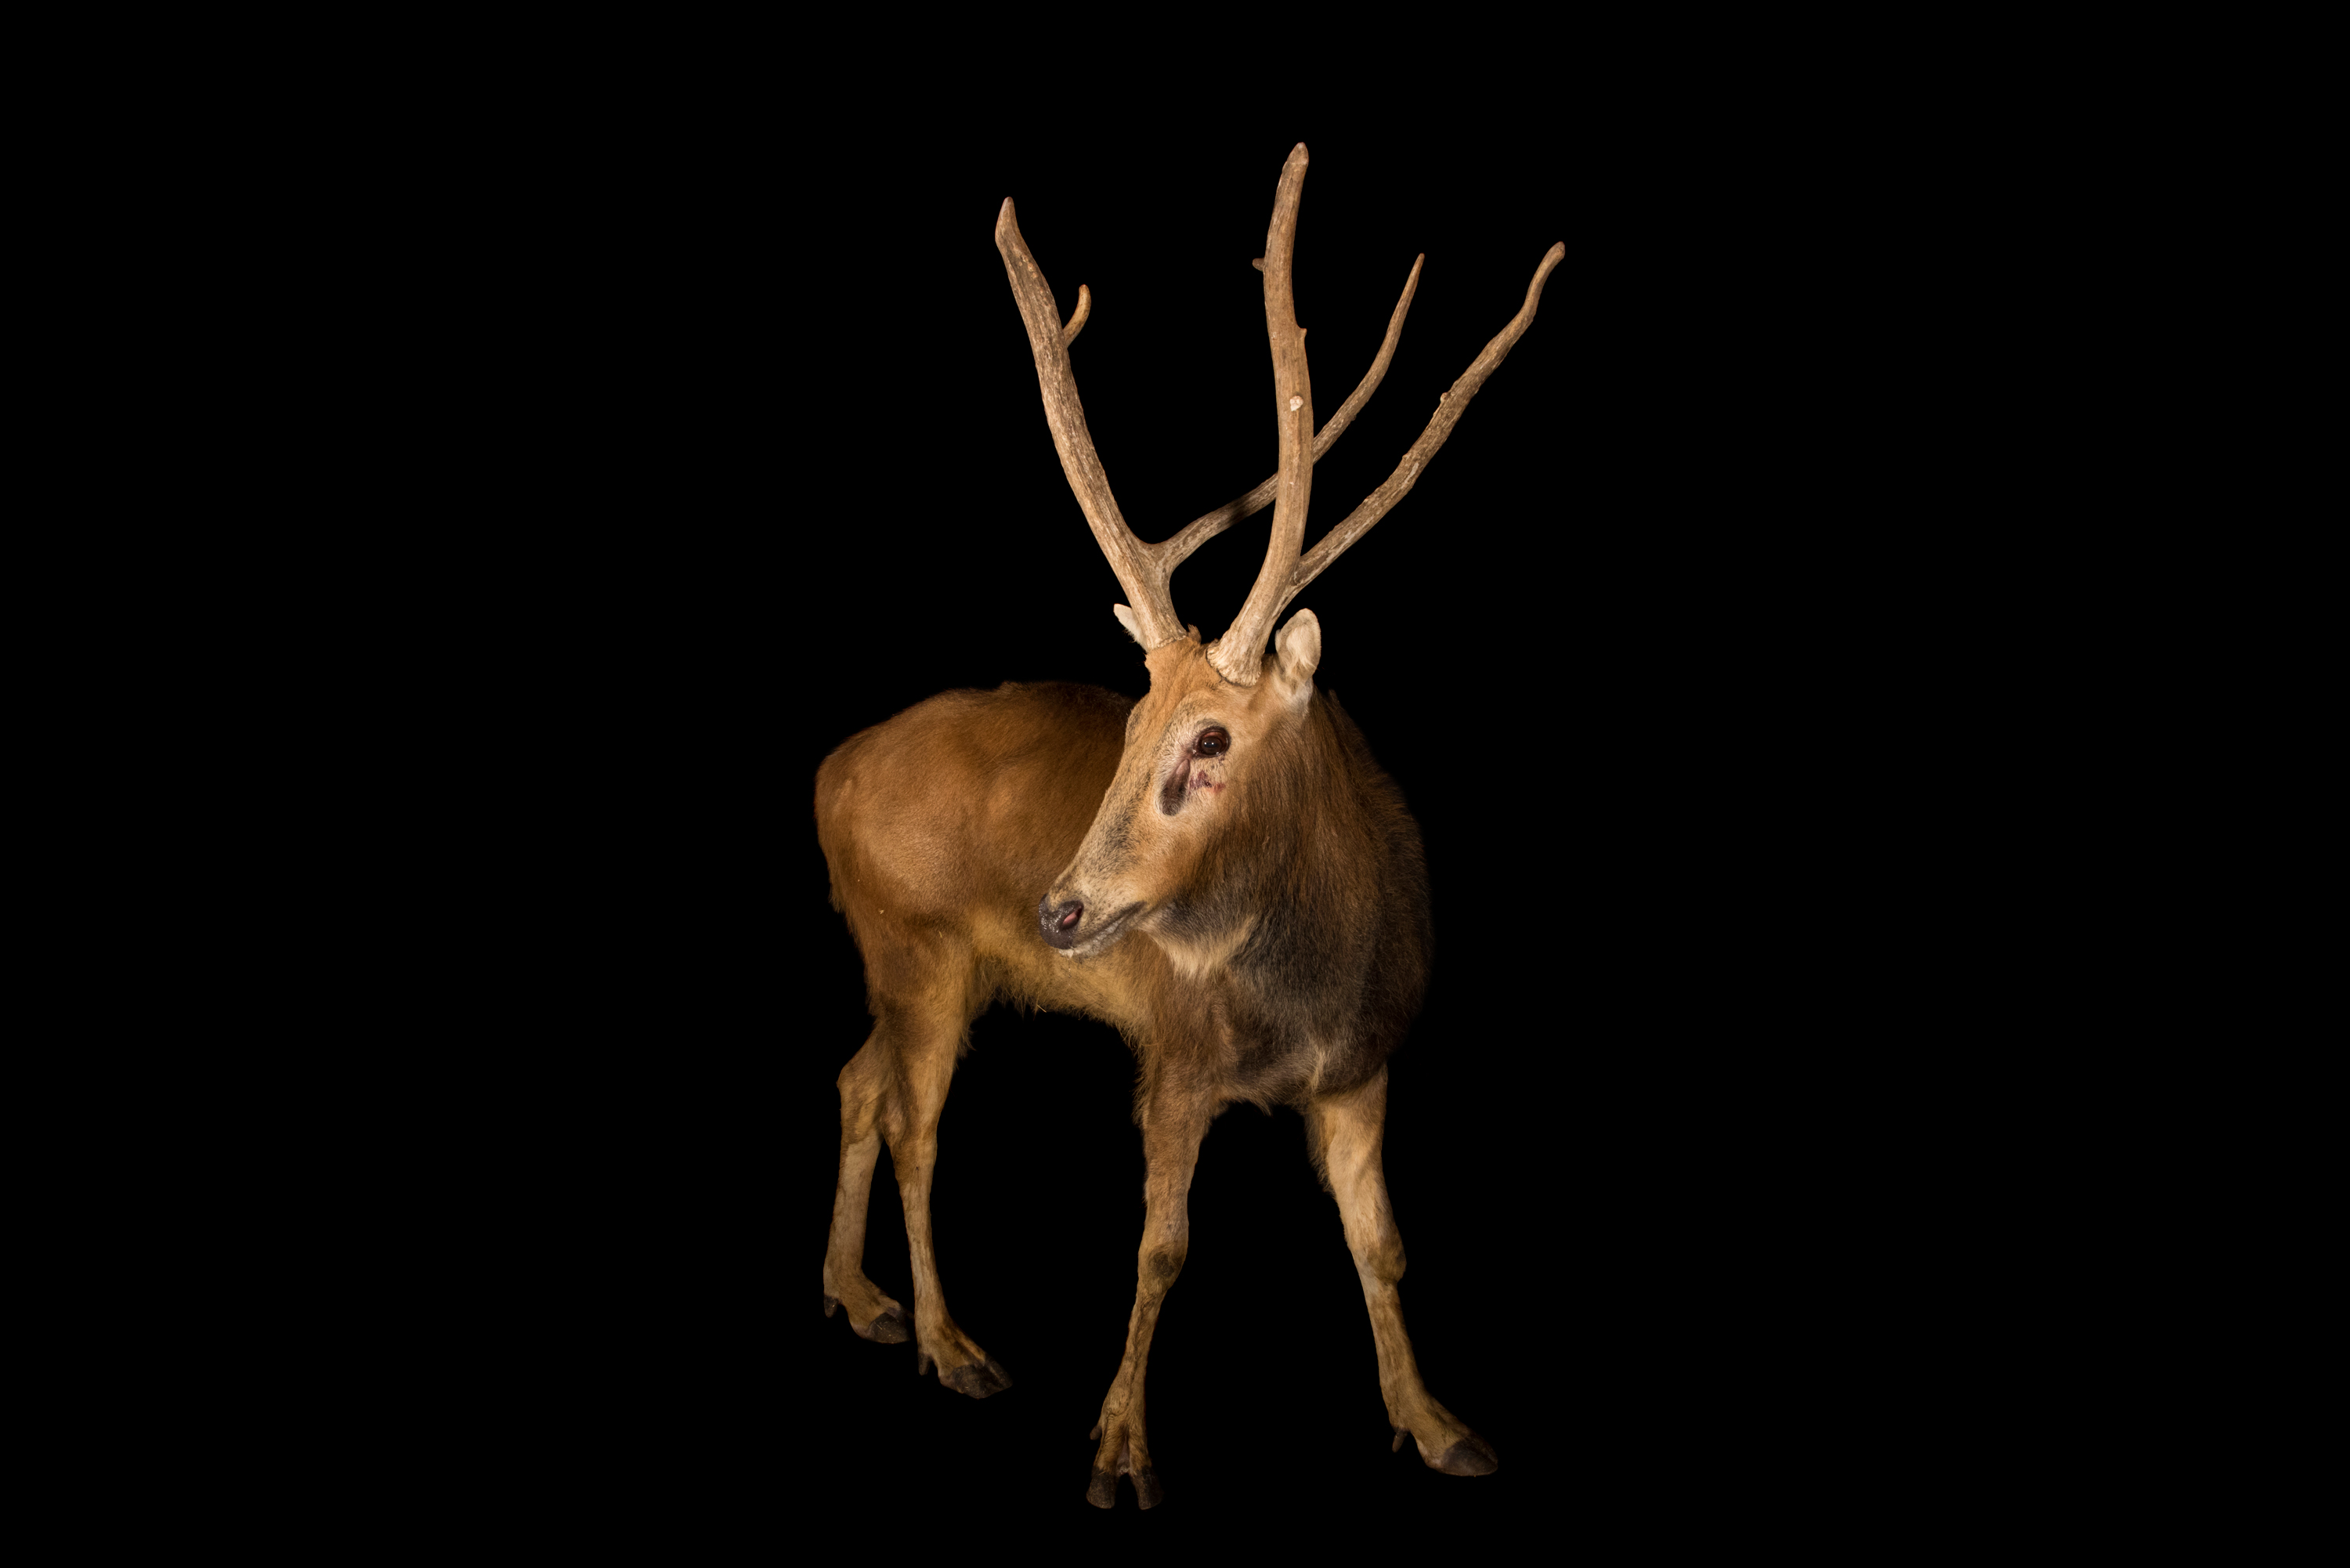 Père David's Deer - Elaphurus davidianus